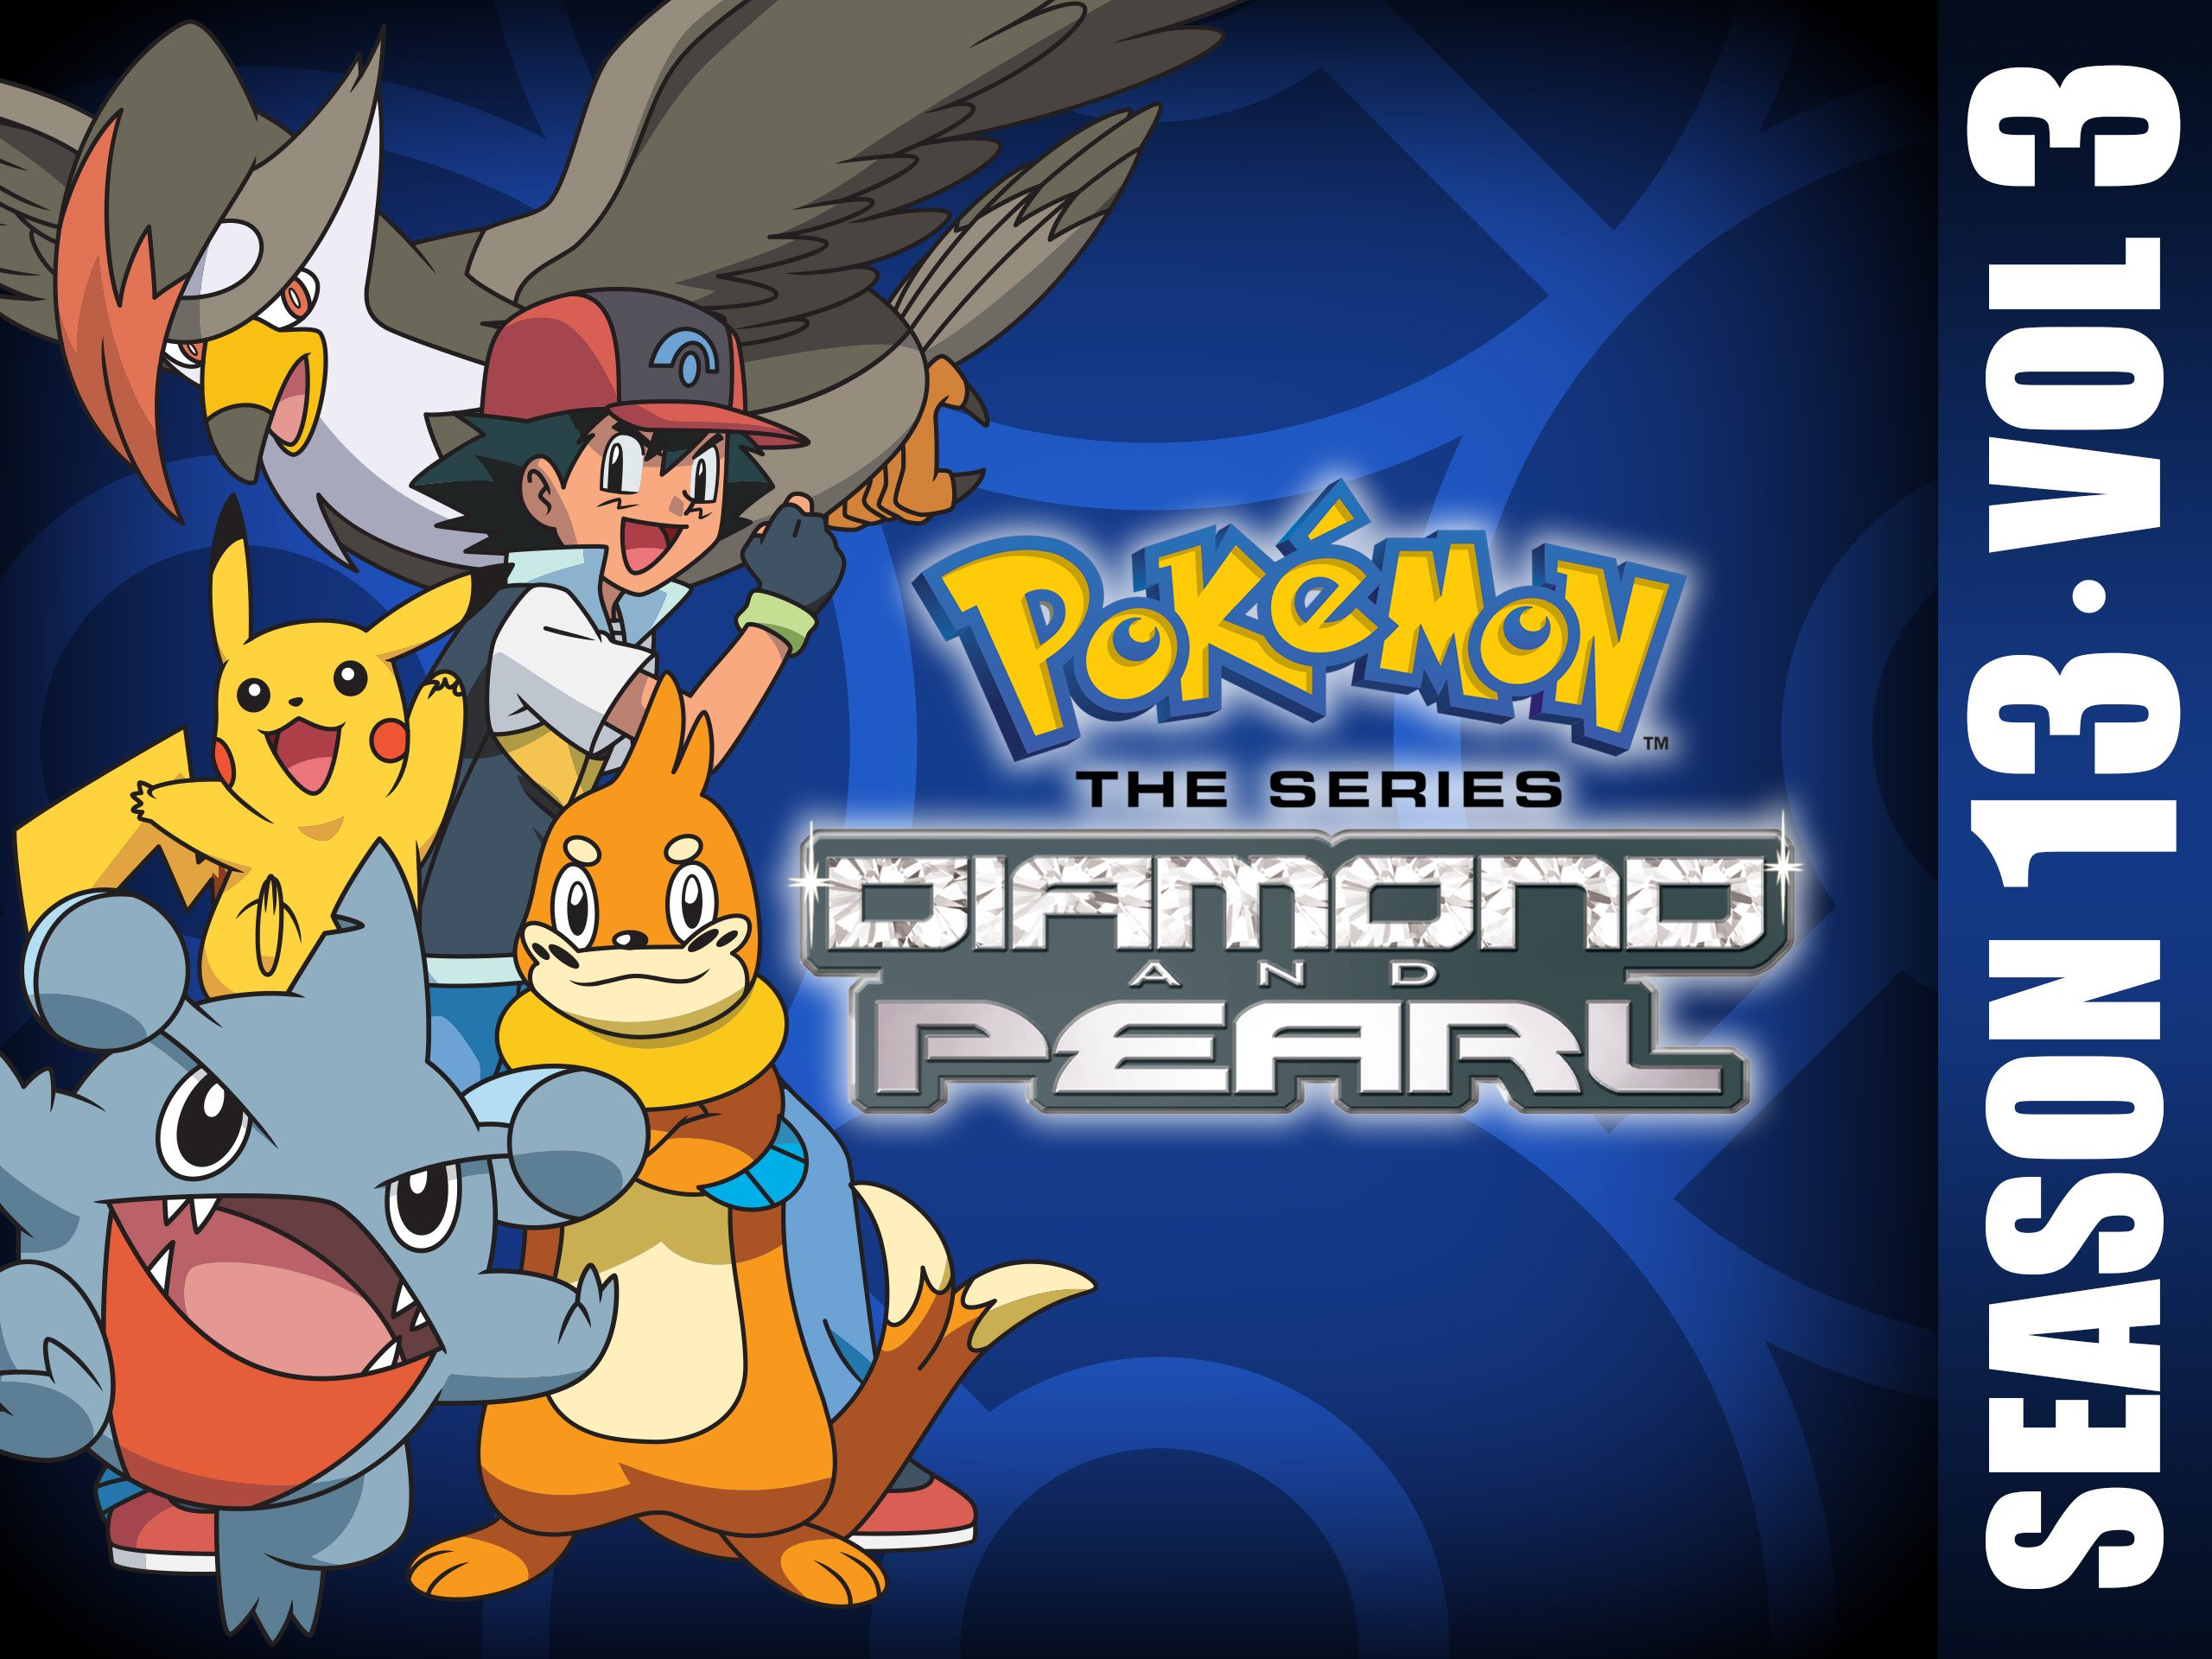 Pokémon the Series: Diamond and Pearl on Amazon Prime Video UK